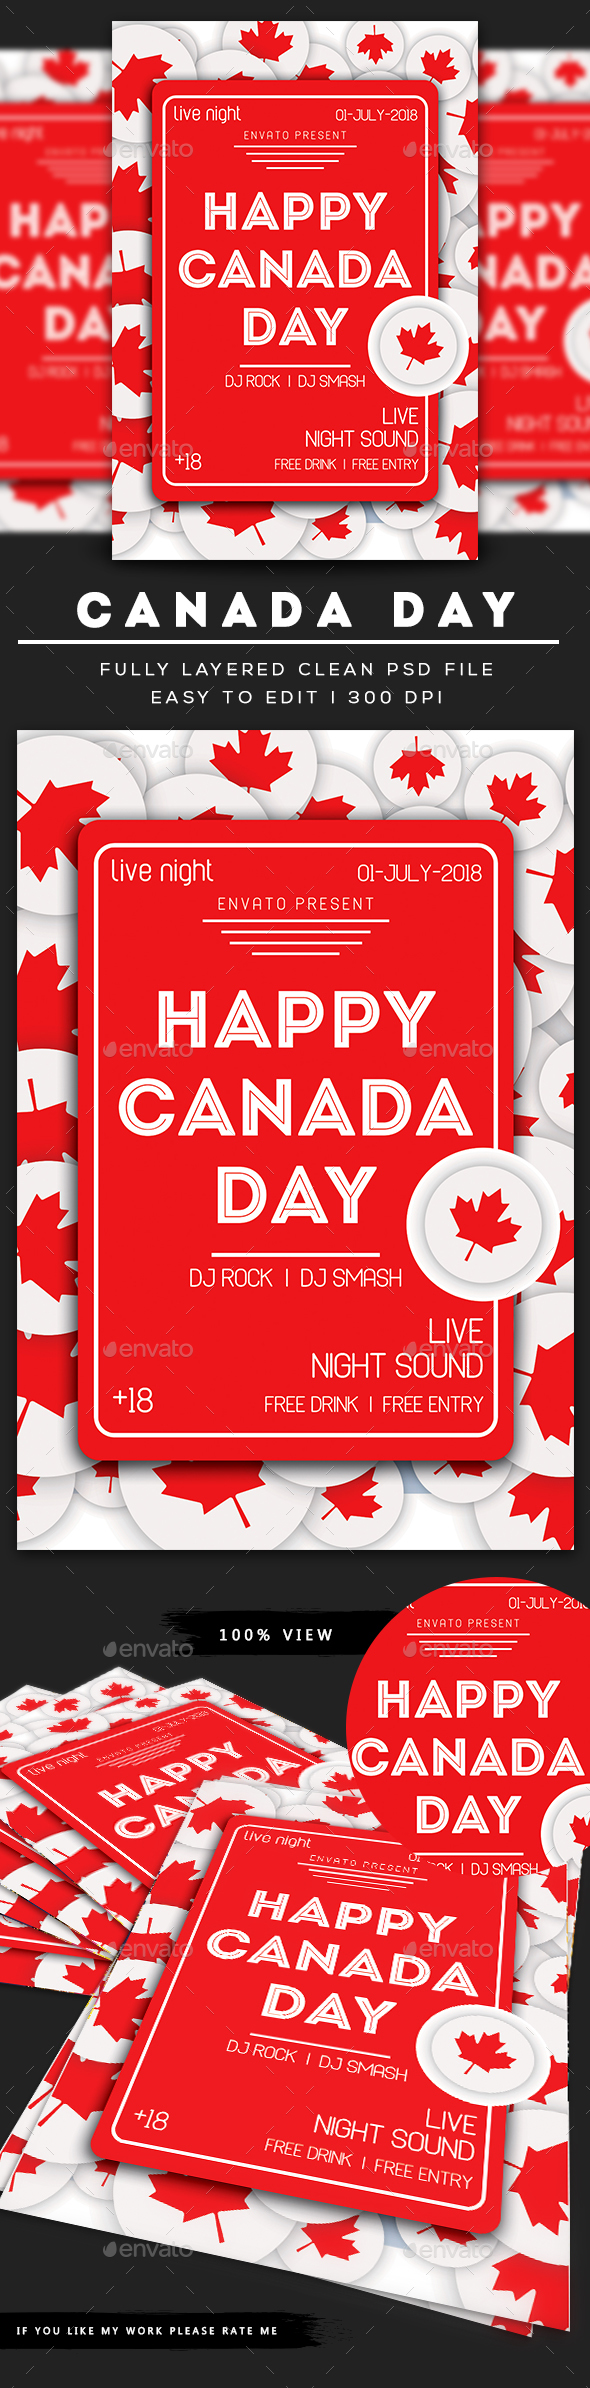 Canada Day Flyer Template - Clubs & Parties Events